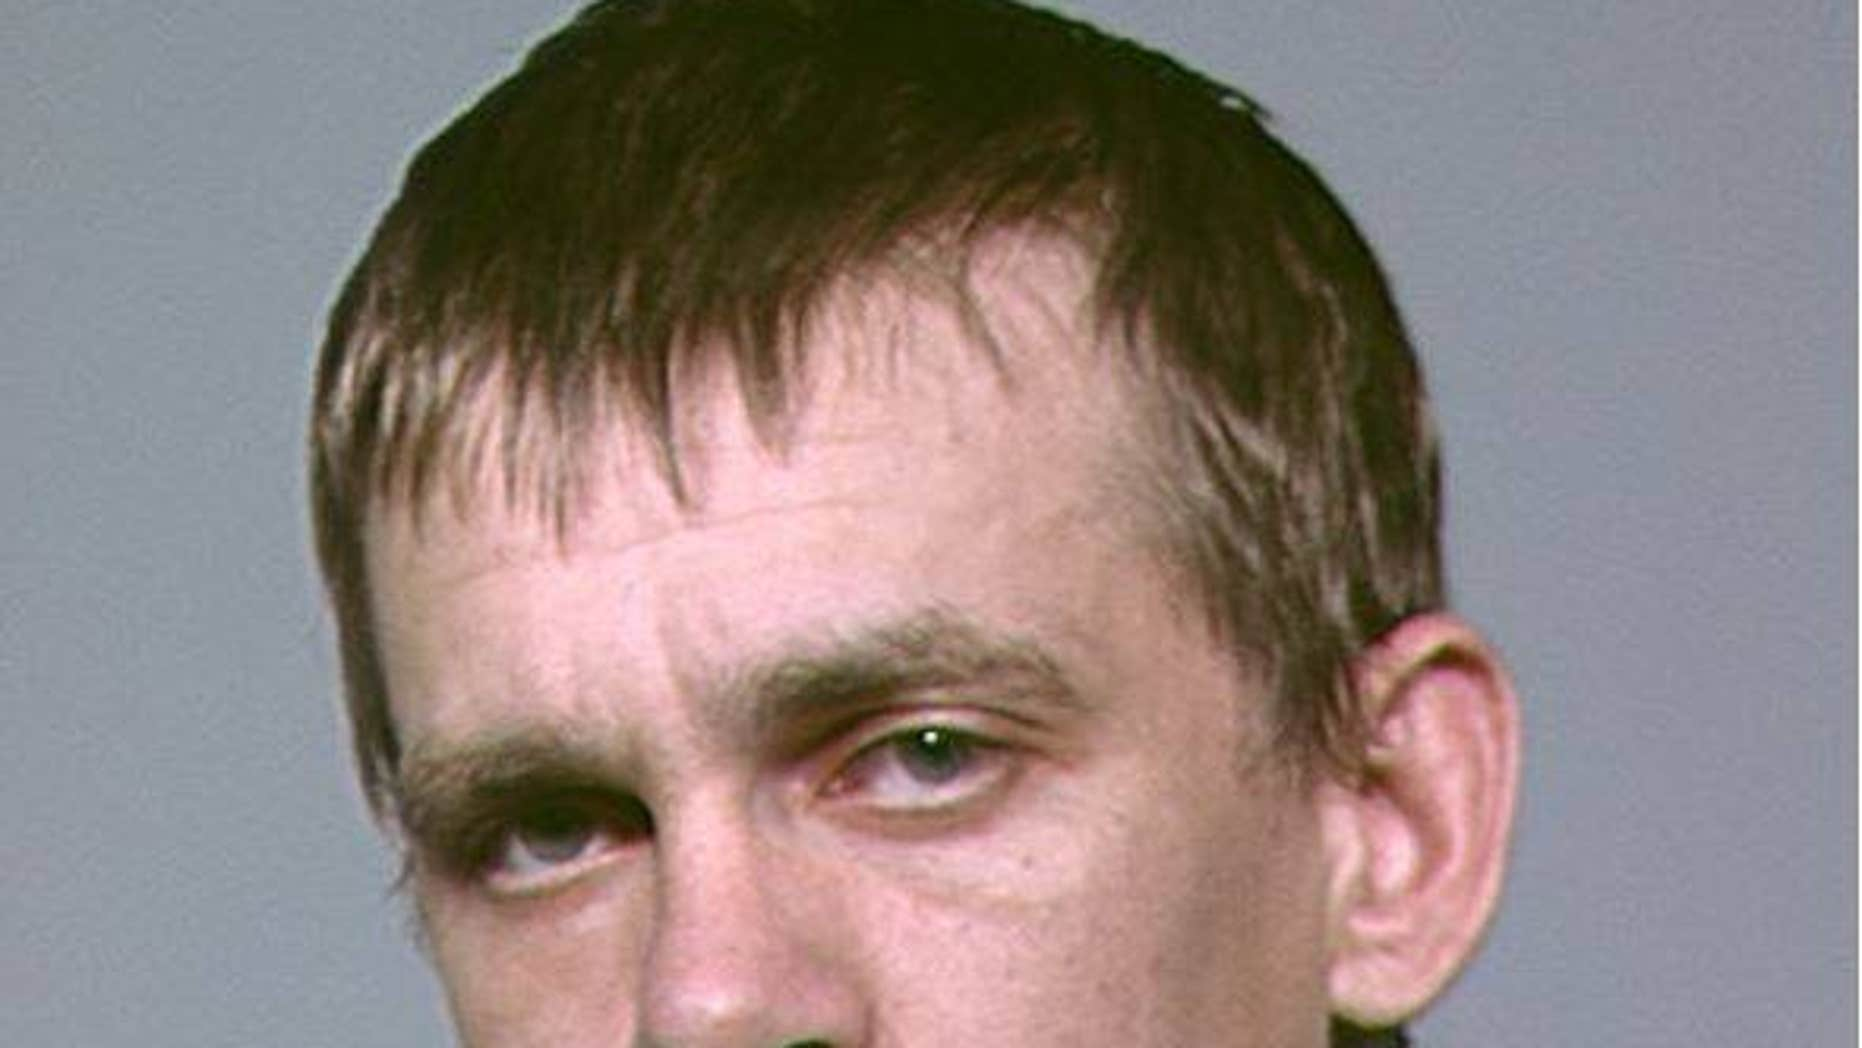 Nathan Alexander Wilson, 34, is suspected of killing his parents at their home on Monday morning.